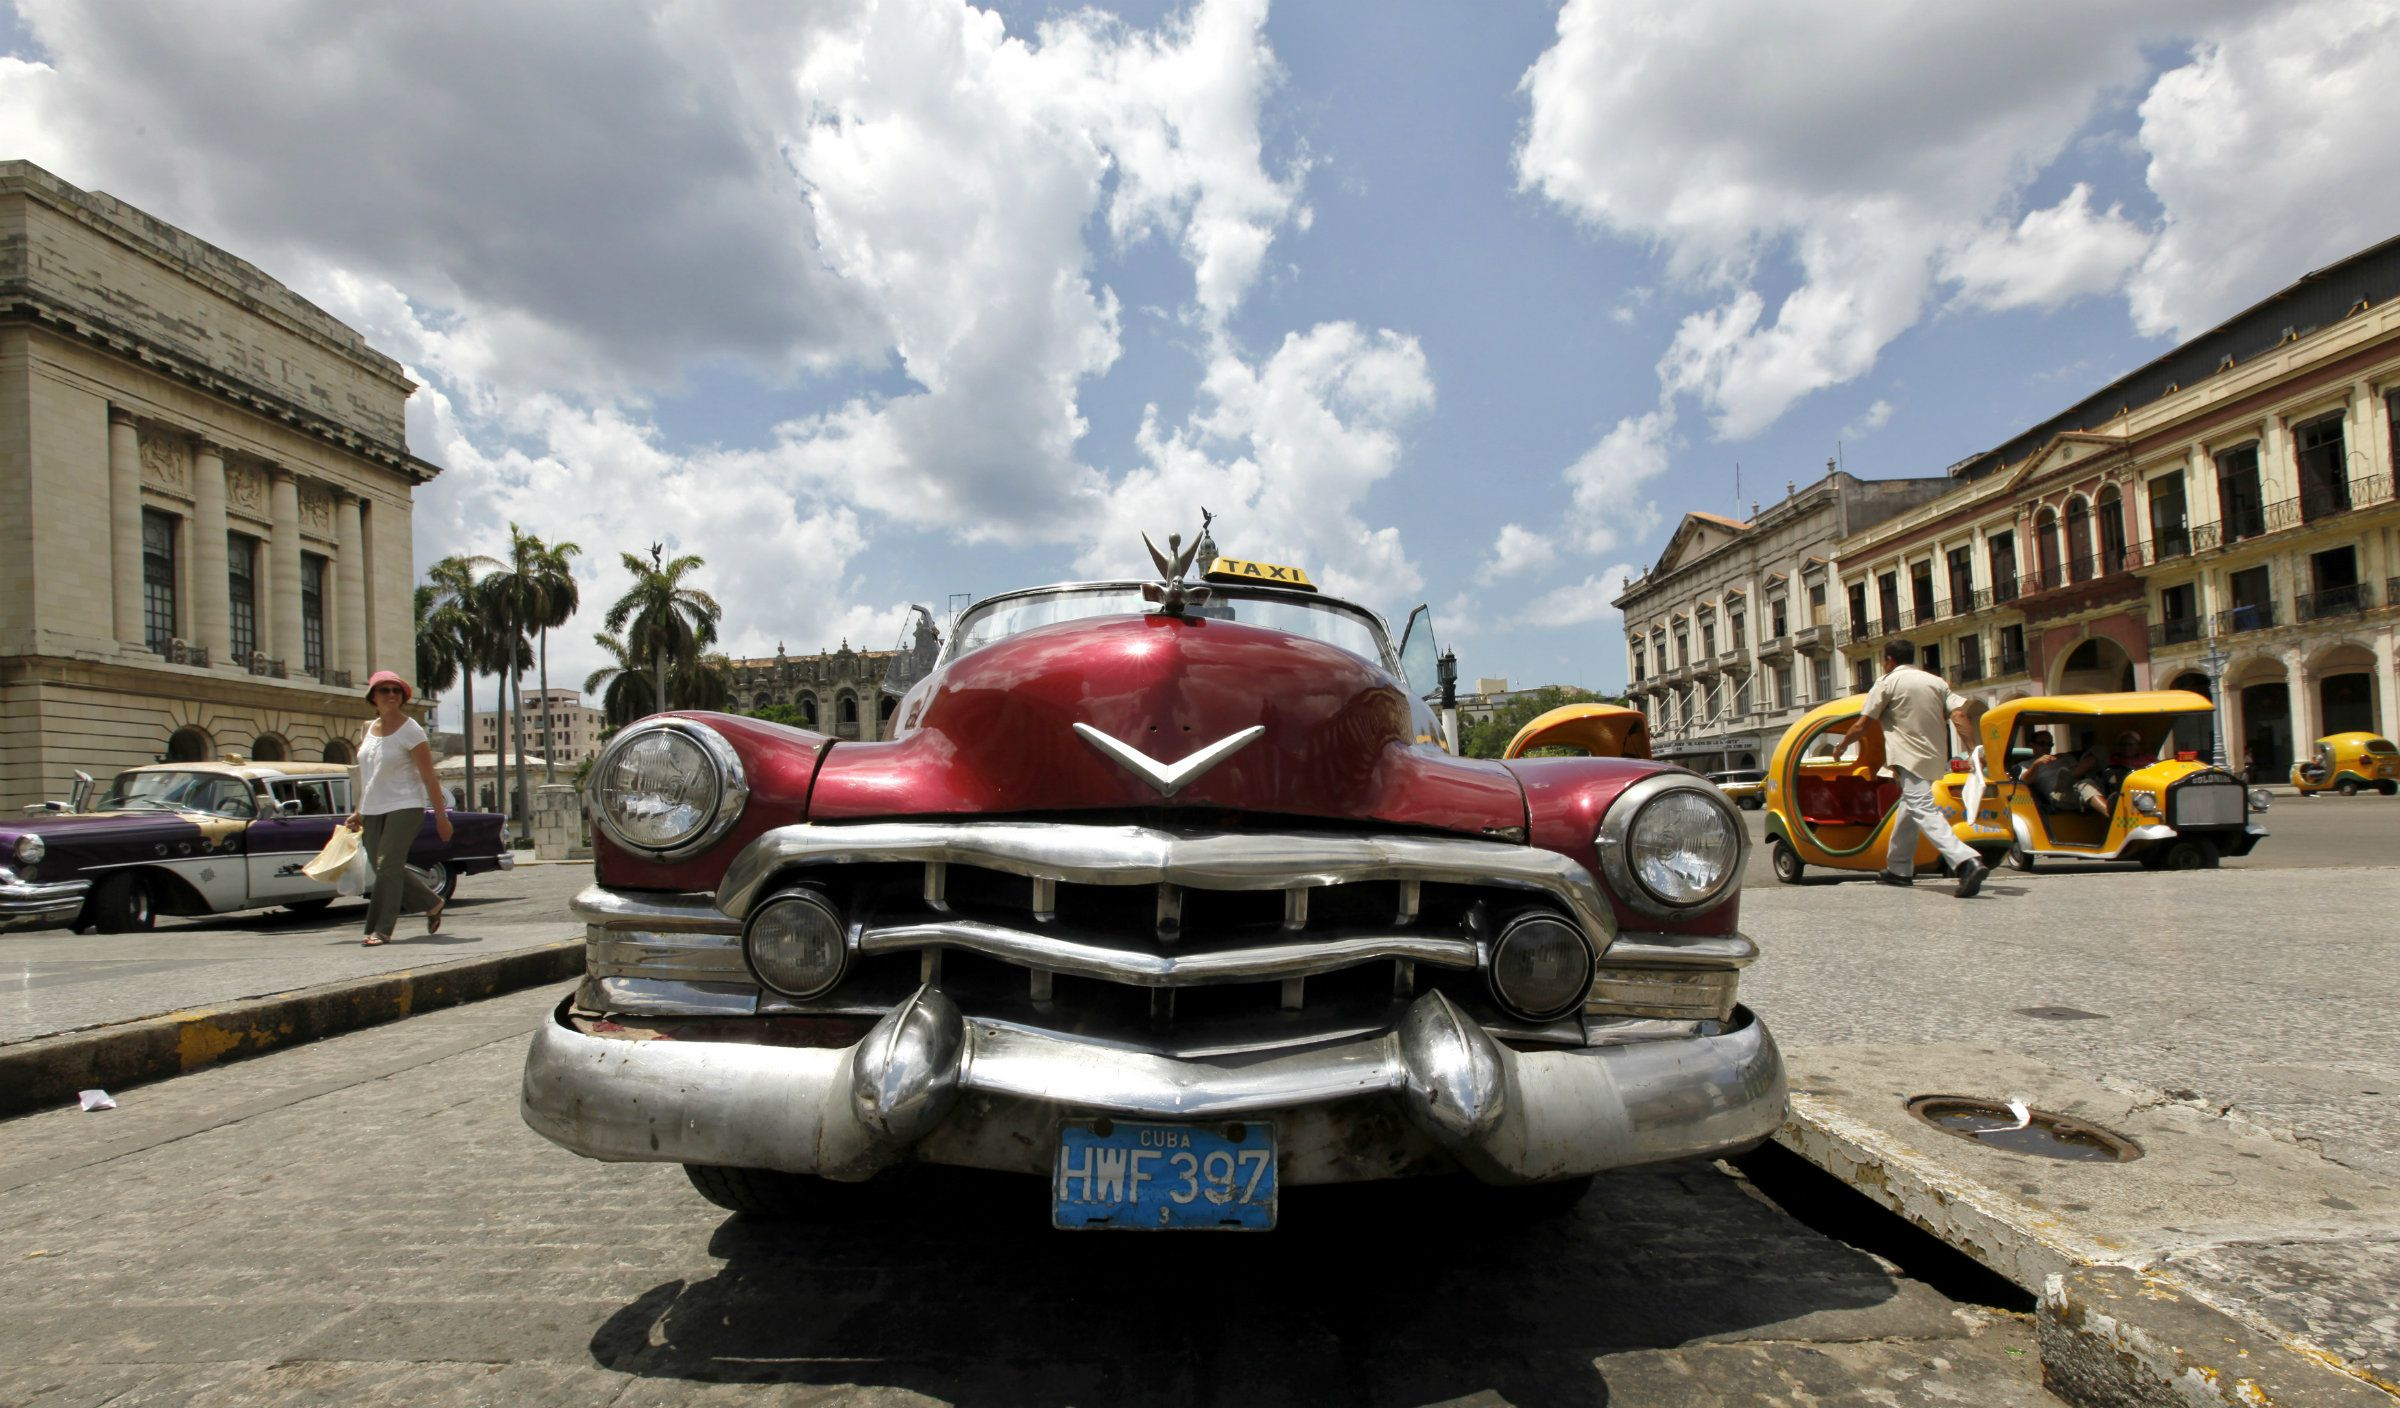 DATE IMPORTED:May 28, 2009A taxi waits for customers at Cuba's Capitol in Havana May 27, 2009. REUTERS/Desmond Boylan (CUBA SOCIETY IMAGES OF THE DAY)